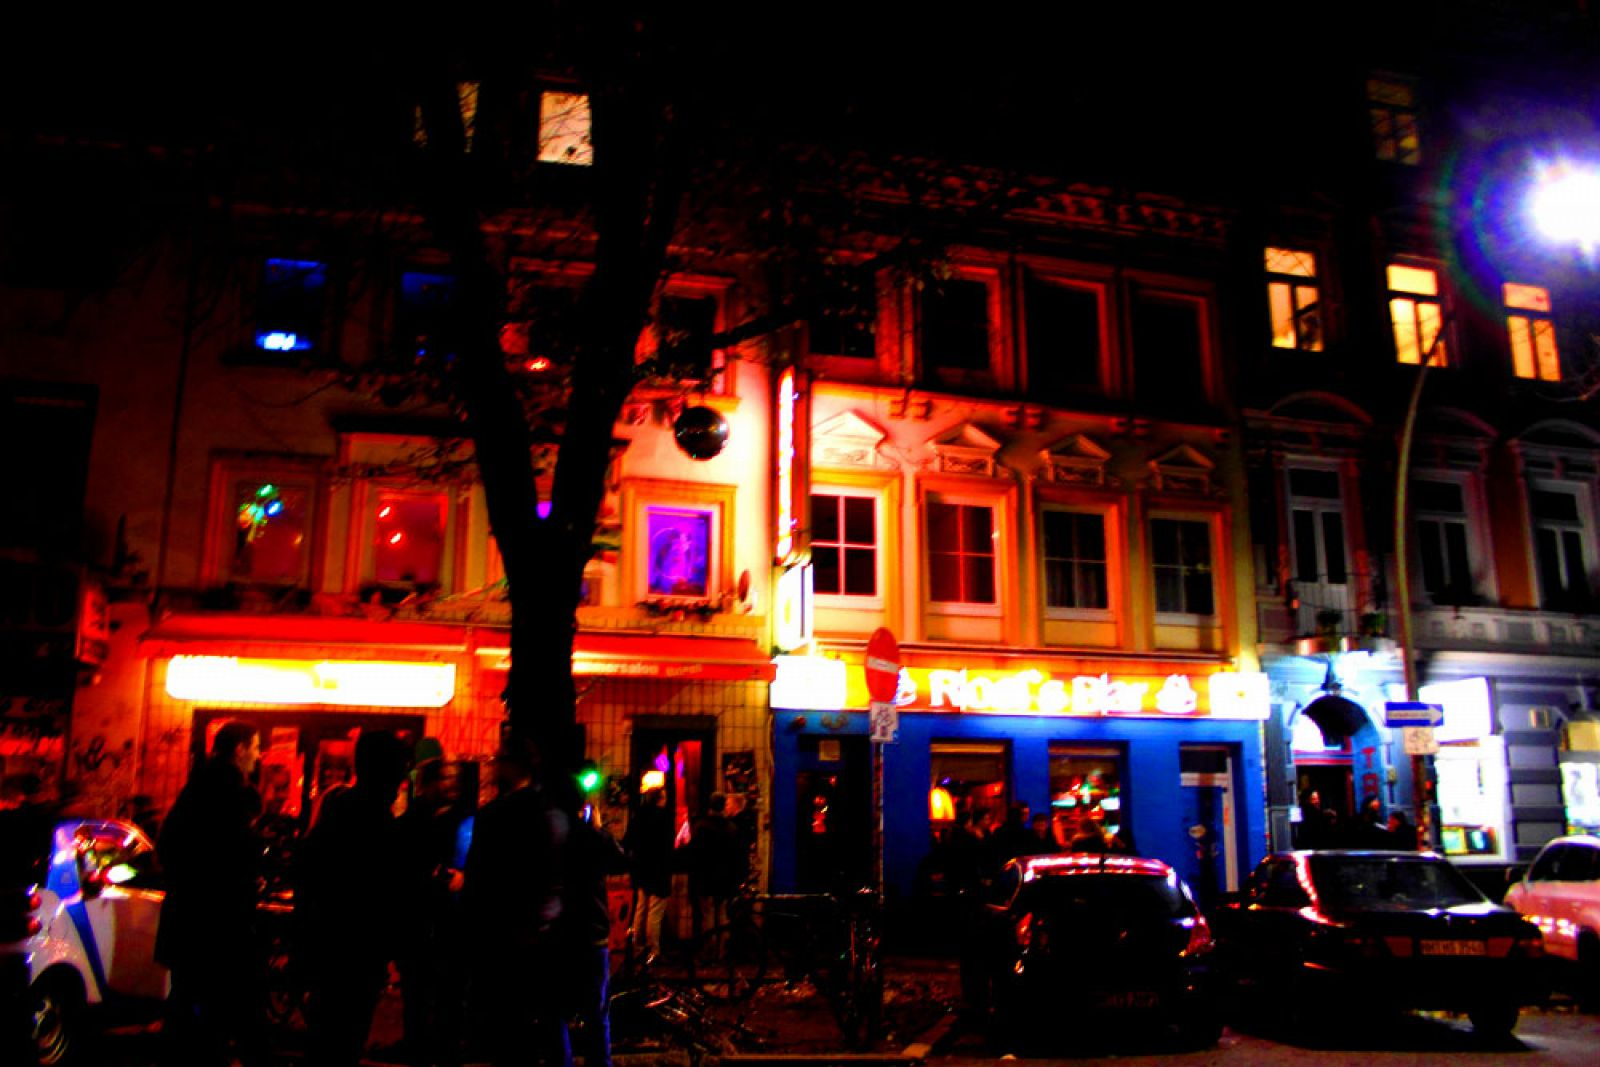 Hamburger Berg Reeperbahn Nightlife Party Clubs